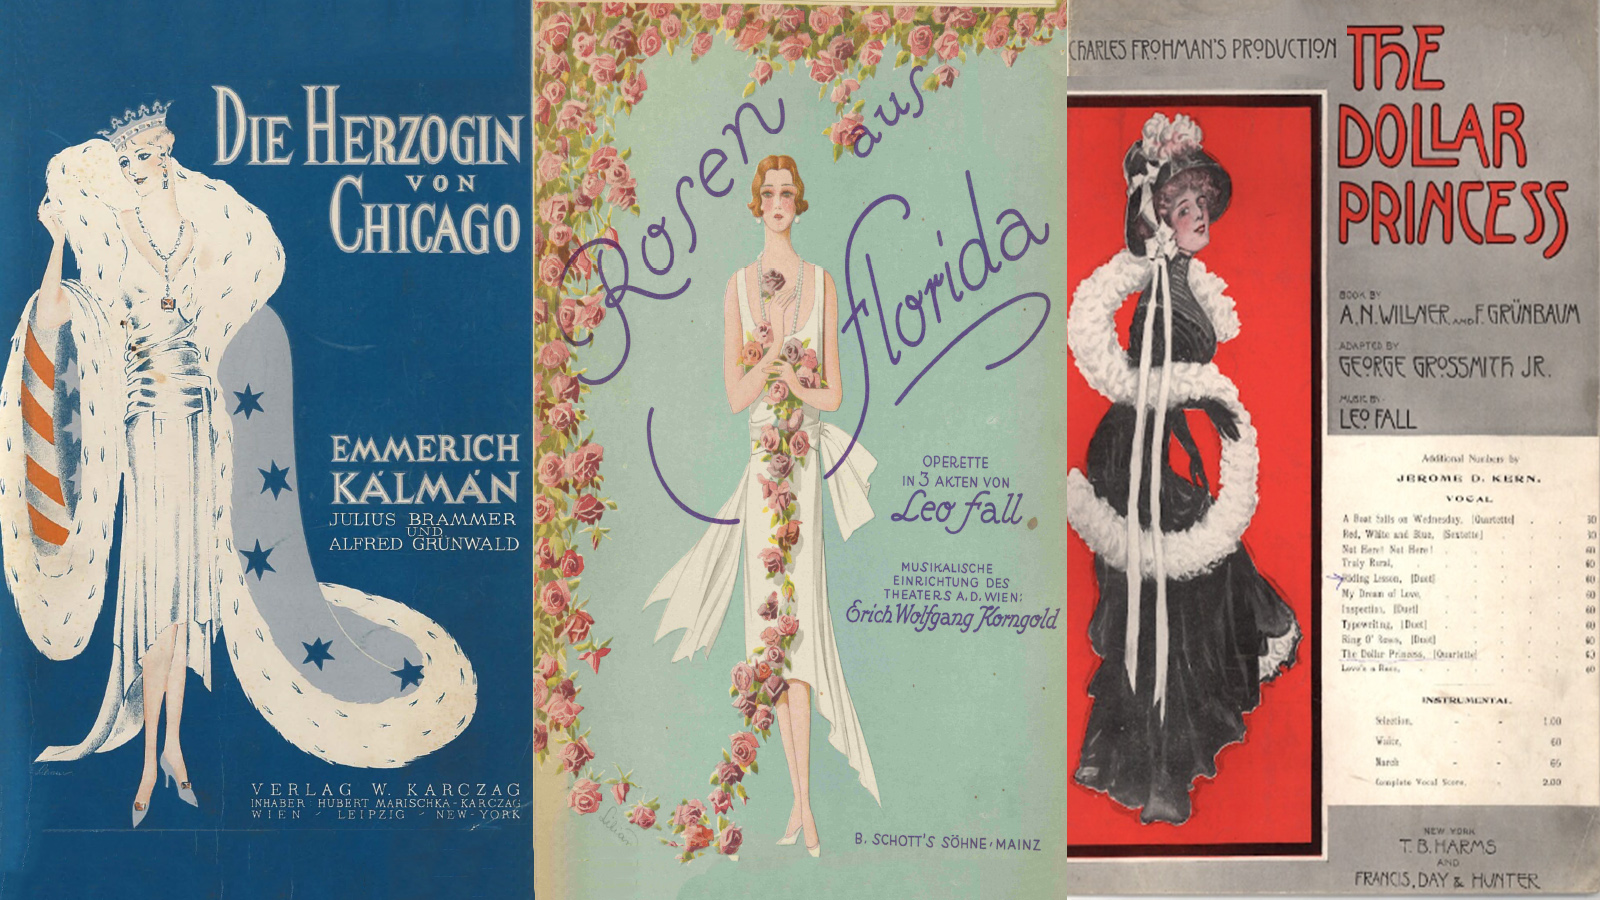 [Program Six: Operetta's America] Score covers: Herzogin von Chicago, Rosen aus Florida, The Dollar Princess; Private Collection